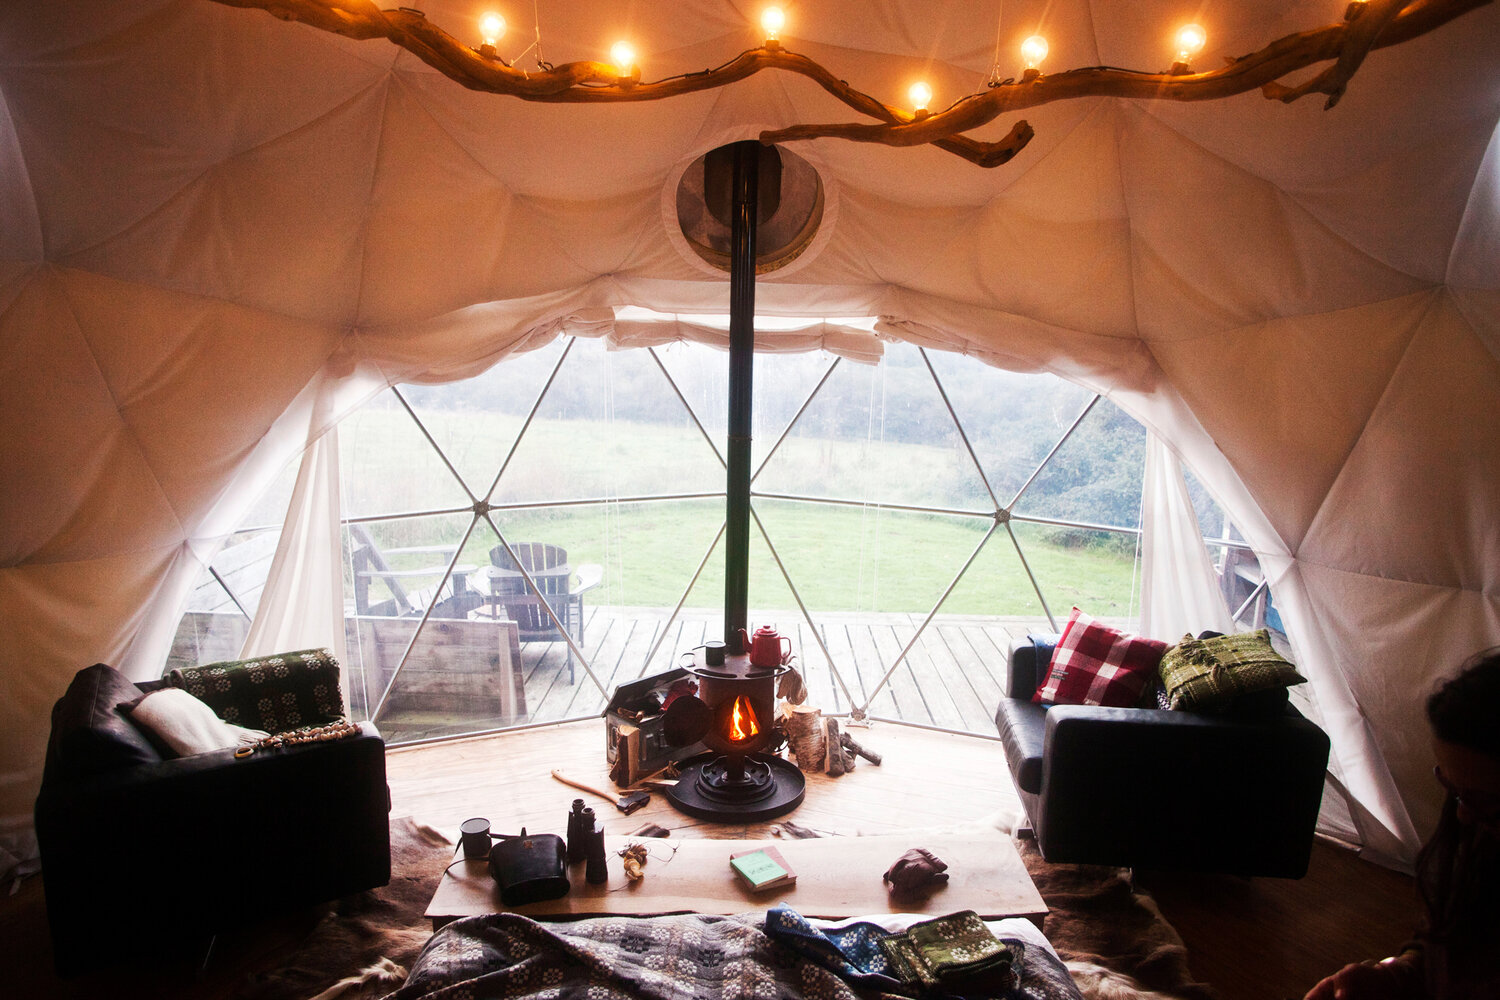 Dome - The dome, made famous at fforest, with its solid wood floor, wood-burning stove, bespoke furnishings and the view from that giant bay window.They have a king size bed, two futon camp beds and are set on their own decked area with an equipped camp kitchen & seating area.Sleeps up to 4£370 per Dome